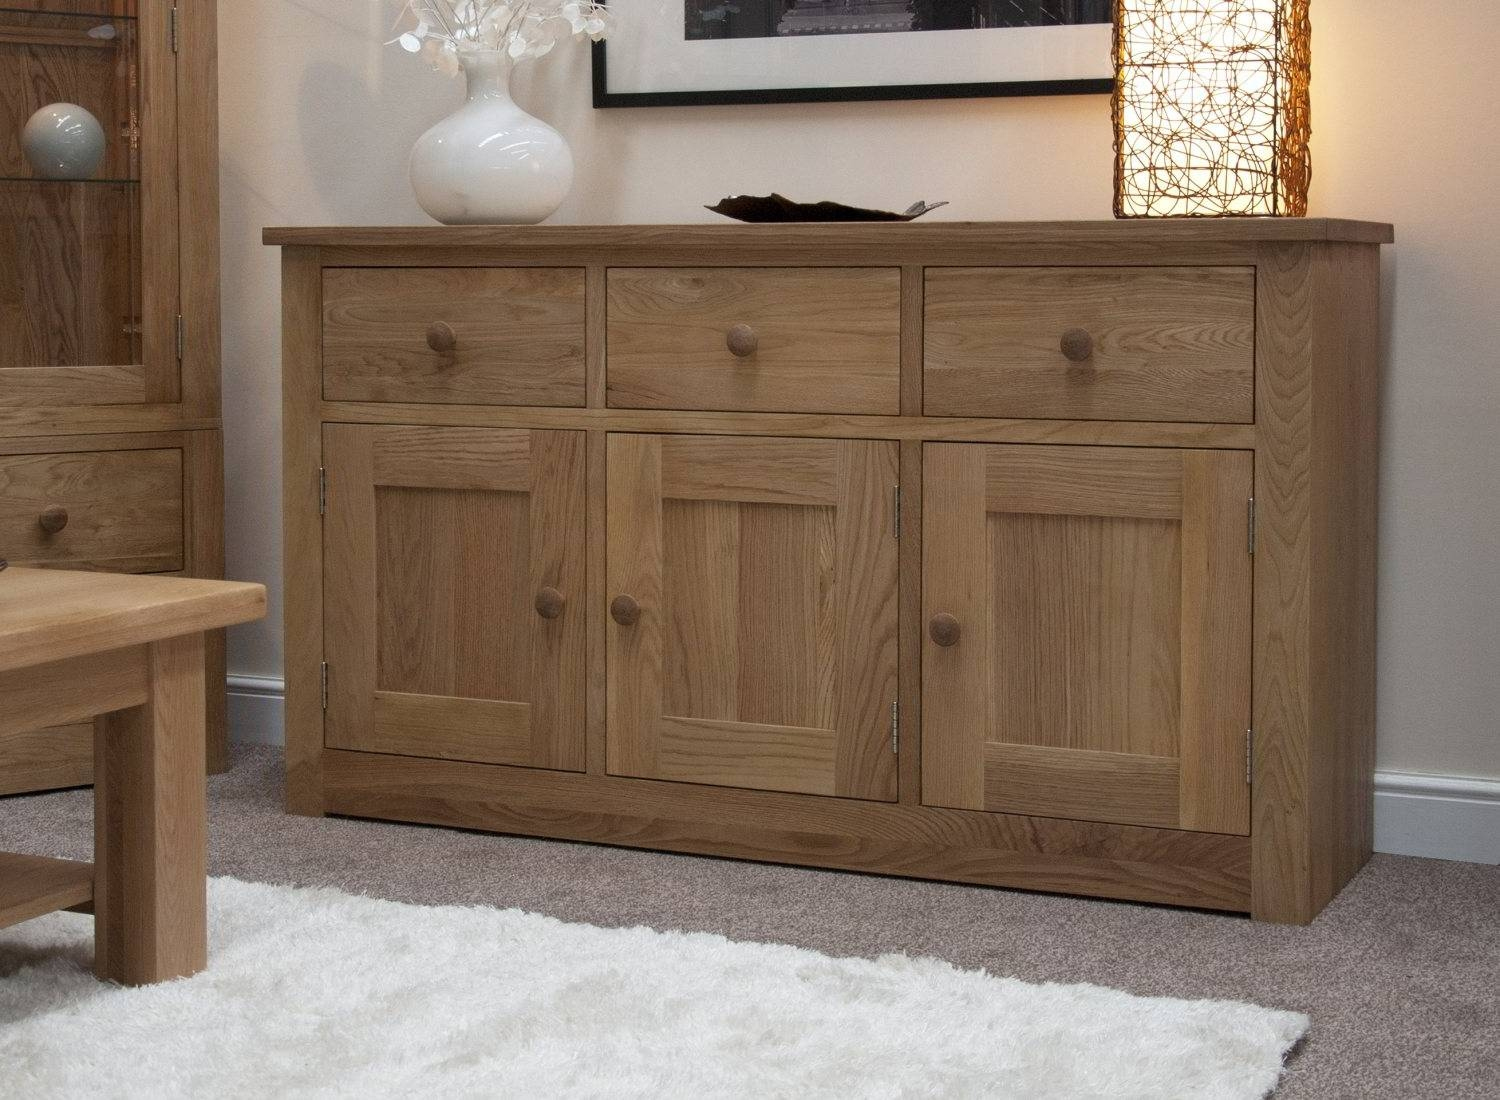 Kingston Solid Oak Living Dining Room Furniture Large Storage intended for Solid Oak Sideboards (Image 7 of 15)